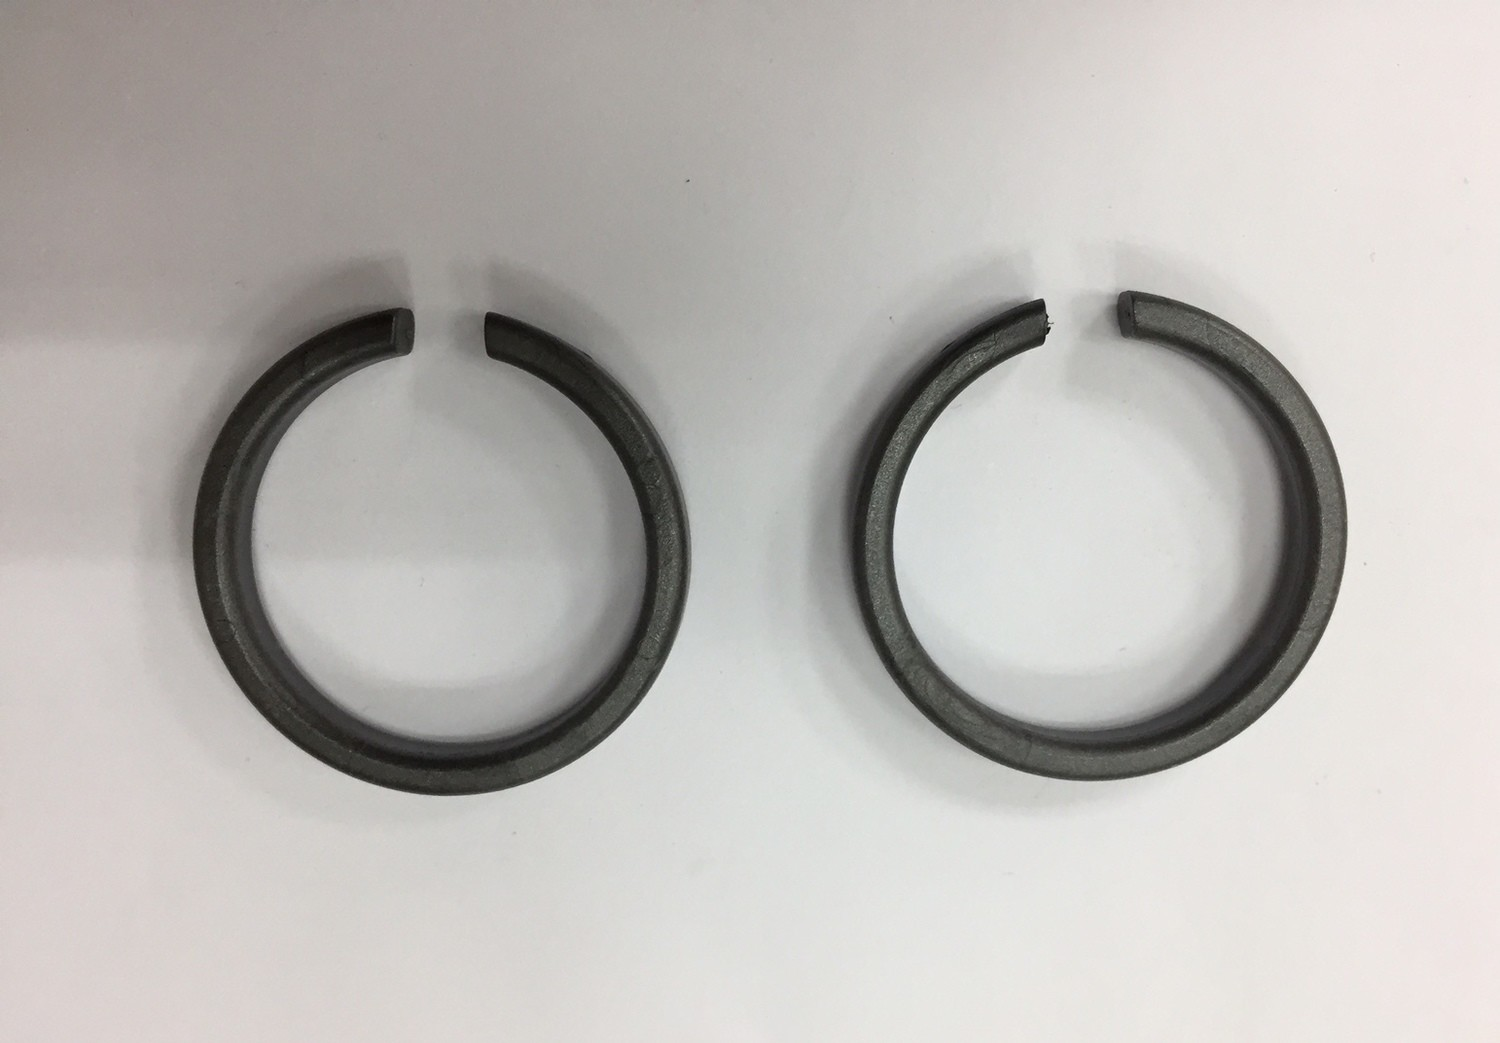 ONE PAIR OF VINTAGE SPEED SHIFTER BASE NYLON BUSHINGS